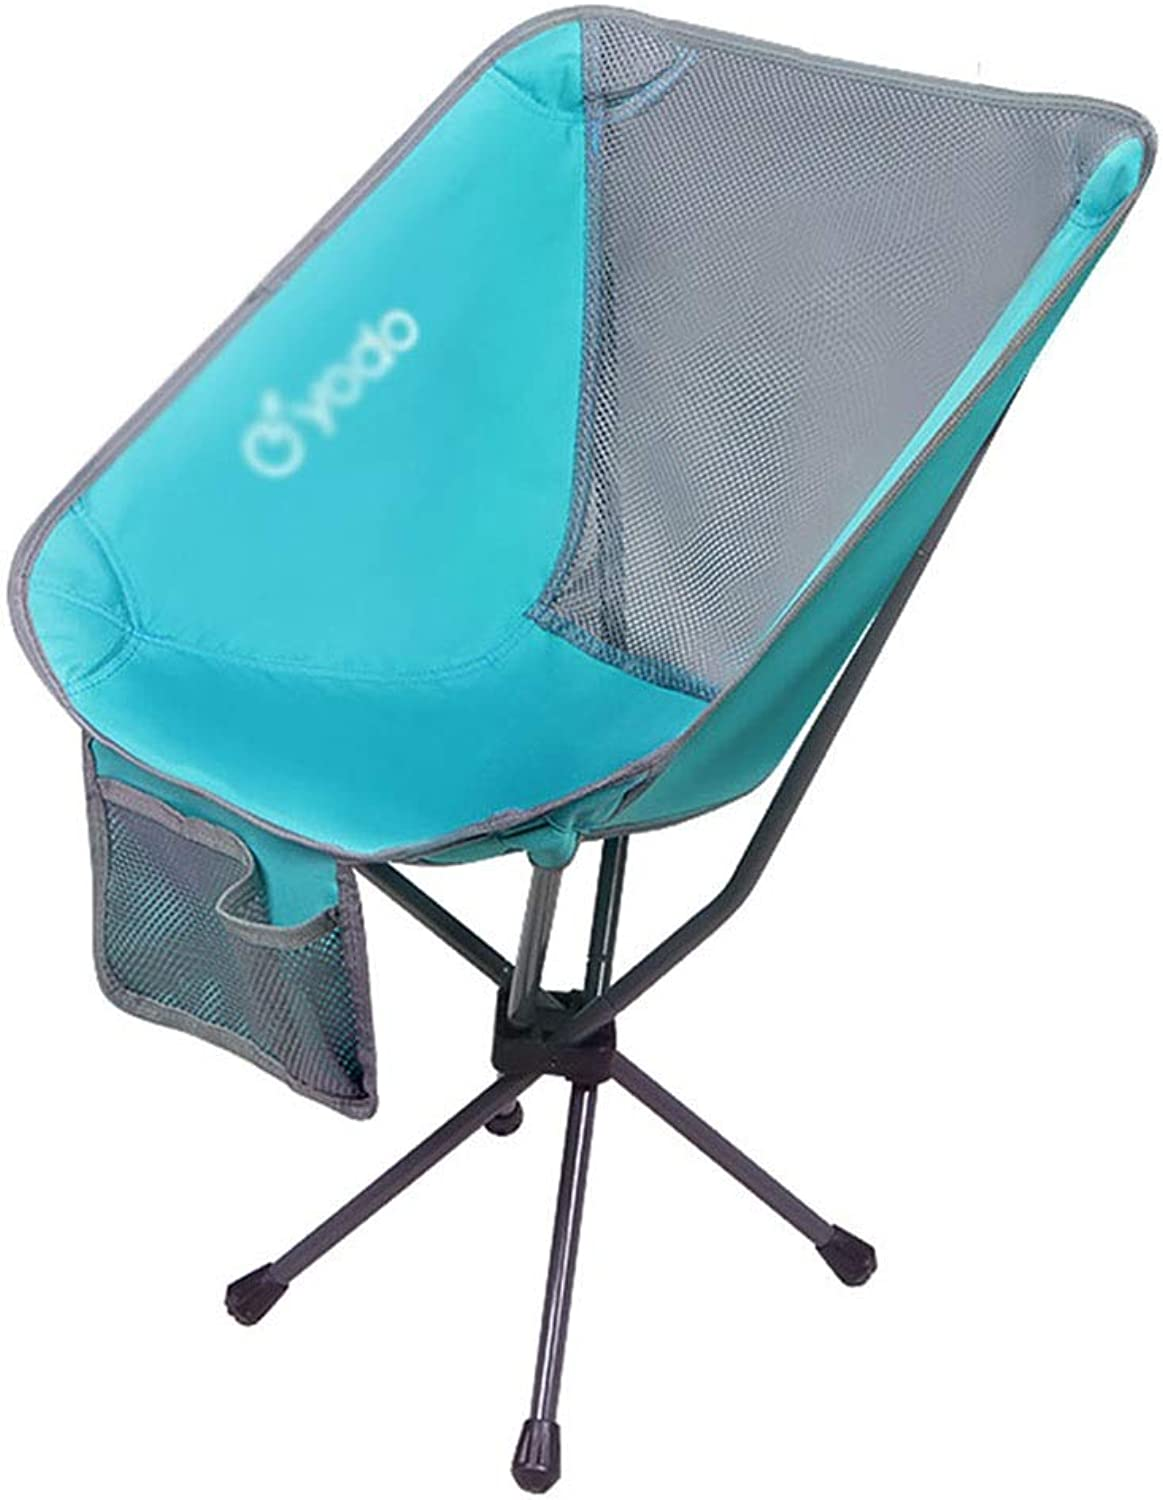 Outdoor folding chair Garden Chair Multi-Purpose Fishing Chair Indoor Lazy Leisure Chair, Fast Folding Load-Bearing 100KG (color   Light bluee, Size   55  52  73cm)